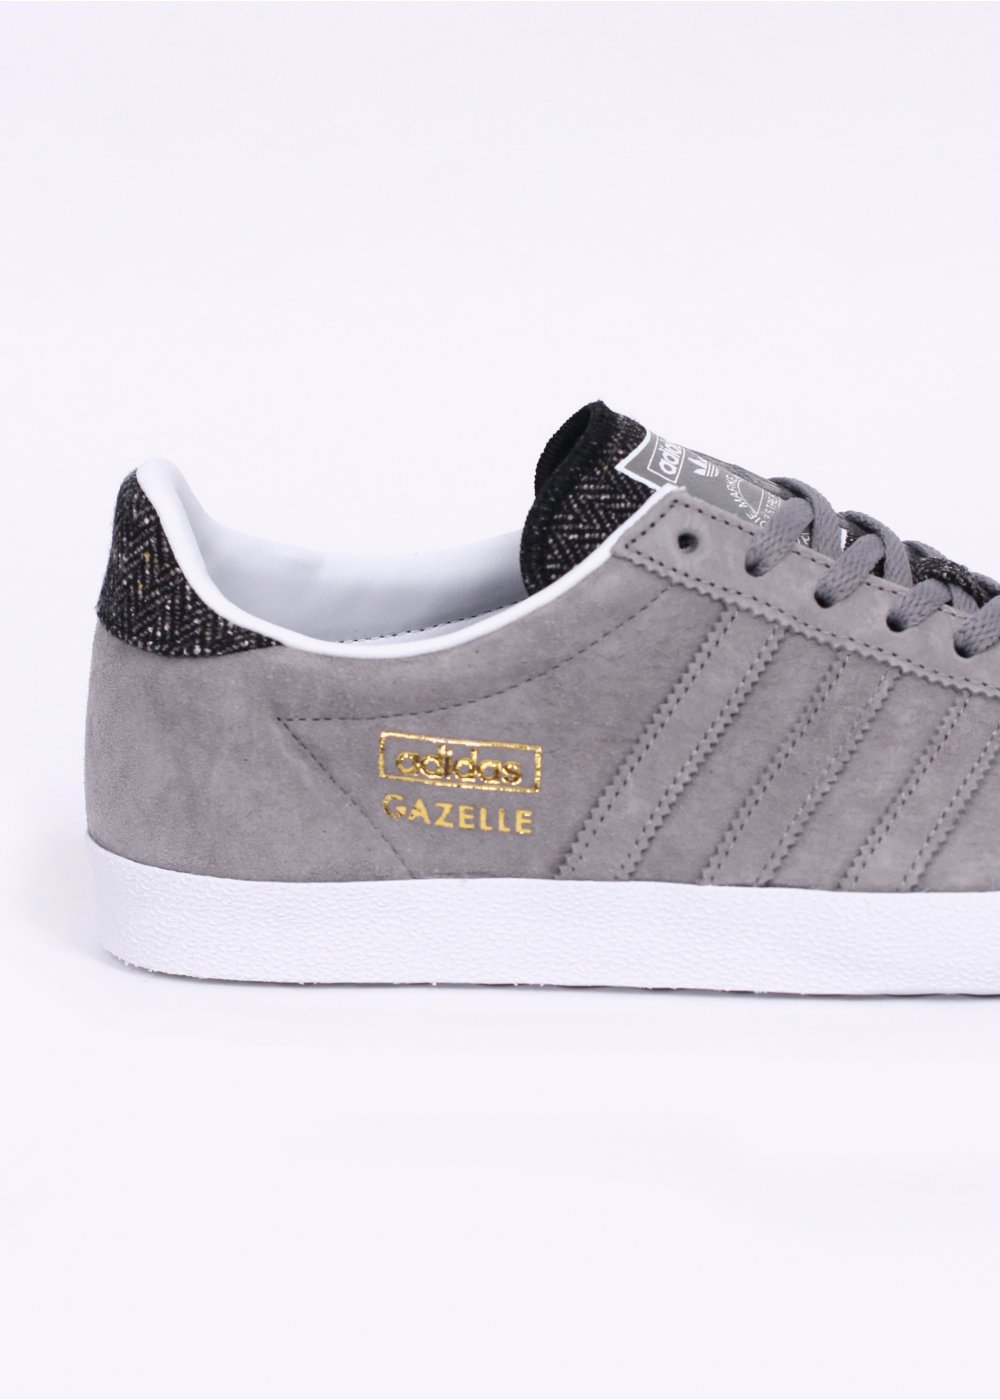 terminar Desbordamiento Persona responsable  adidas gazelle grey Sale,up to 59% Discounts